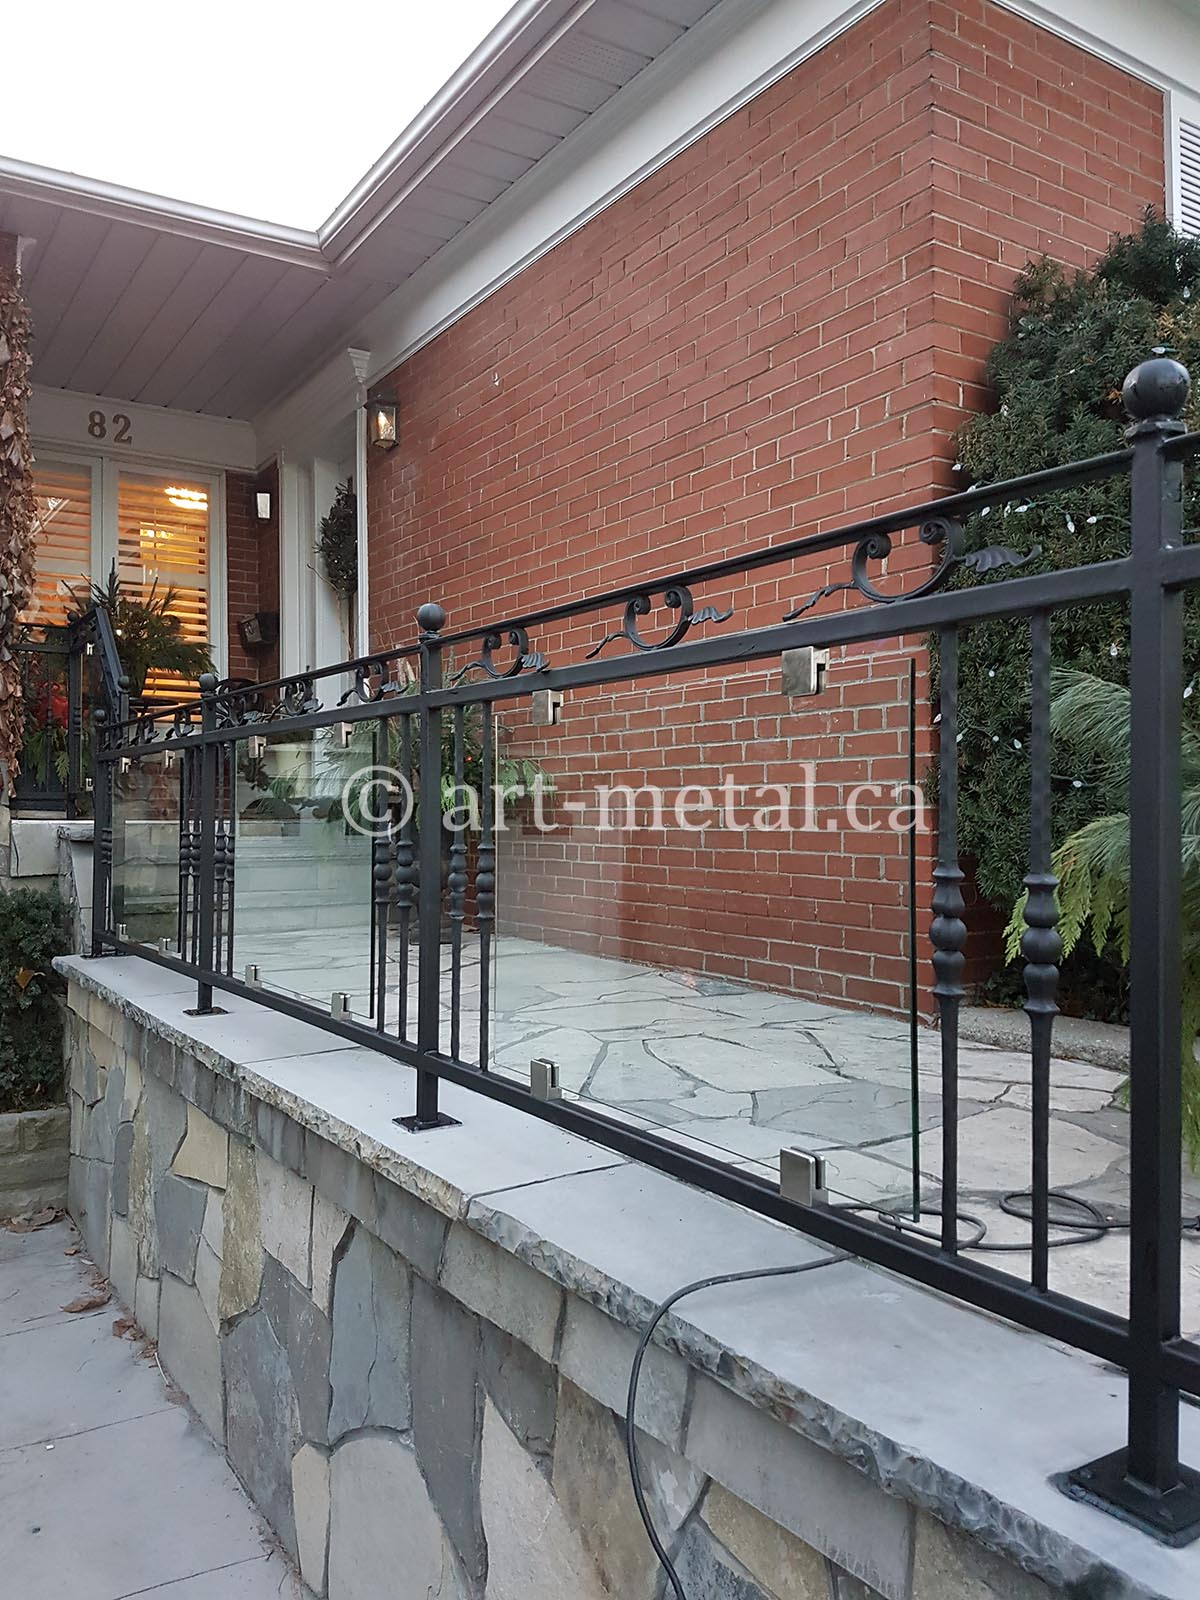 Deck Railing Height Requirements And Codes For Ontario